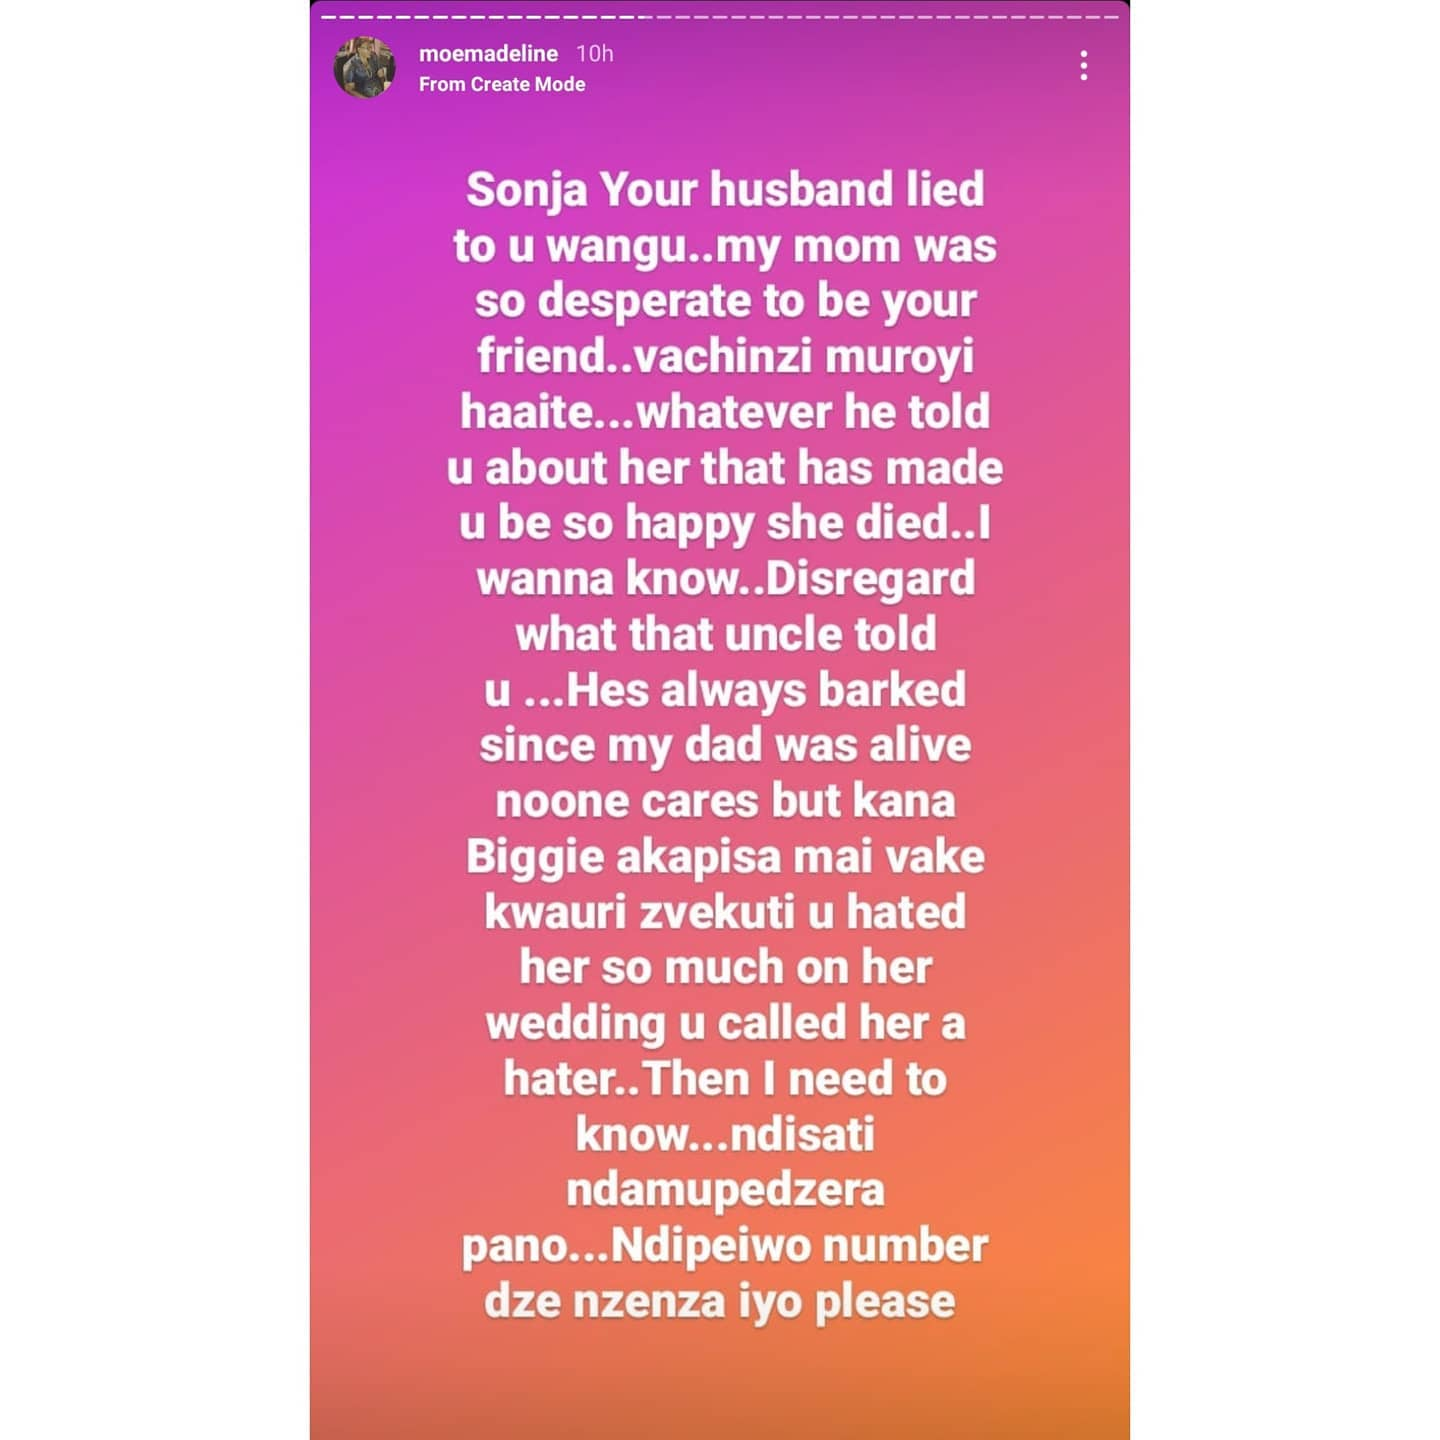 Chivhayo Family Drama - Sister Moe Exposes Wicknell's Chats!